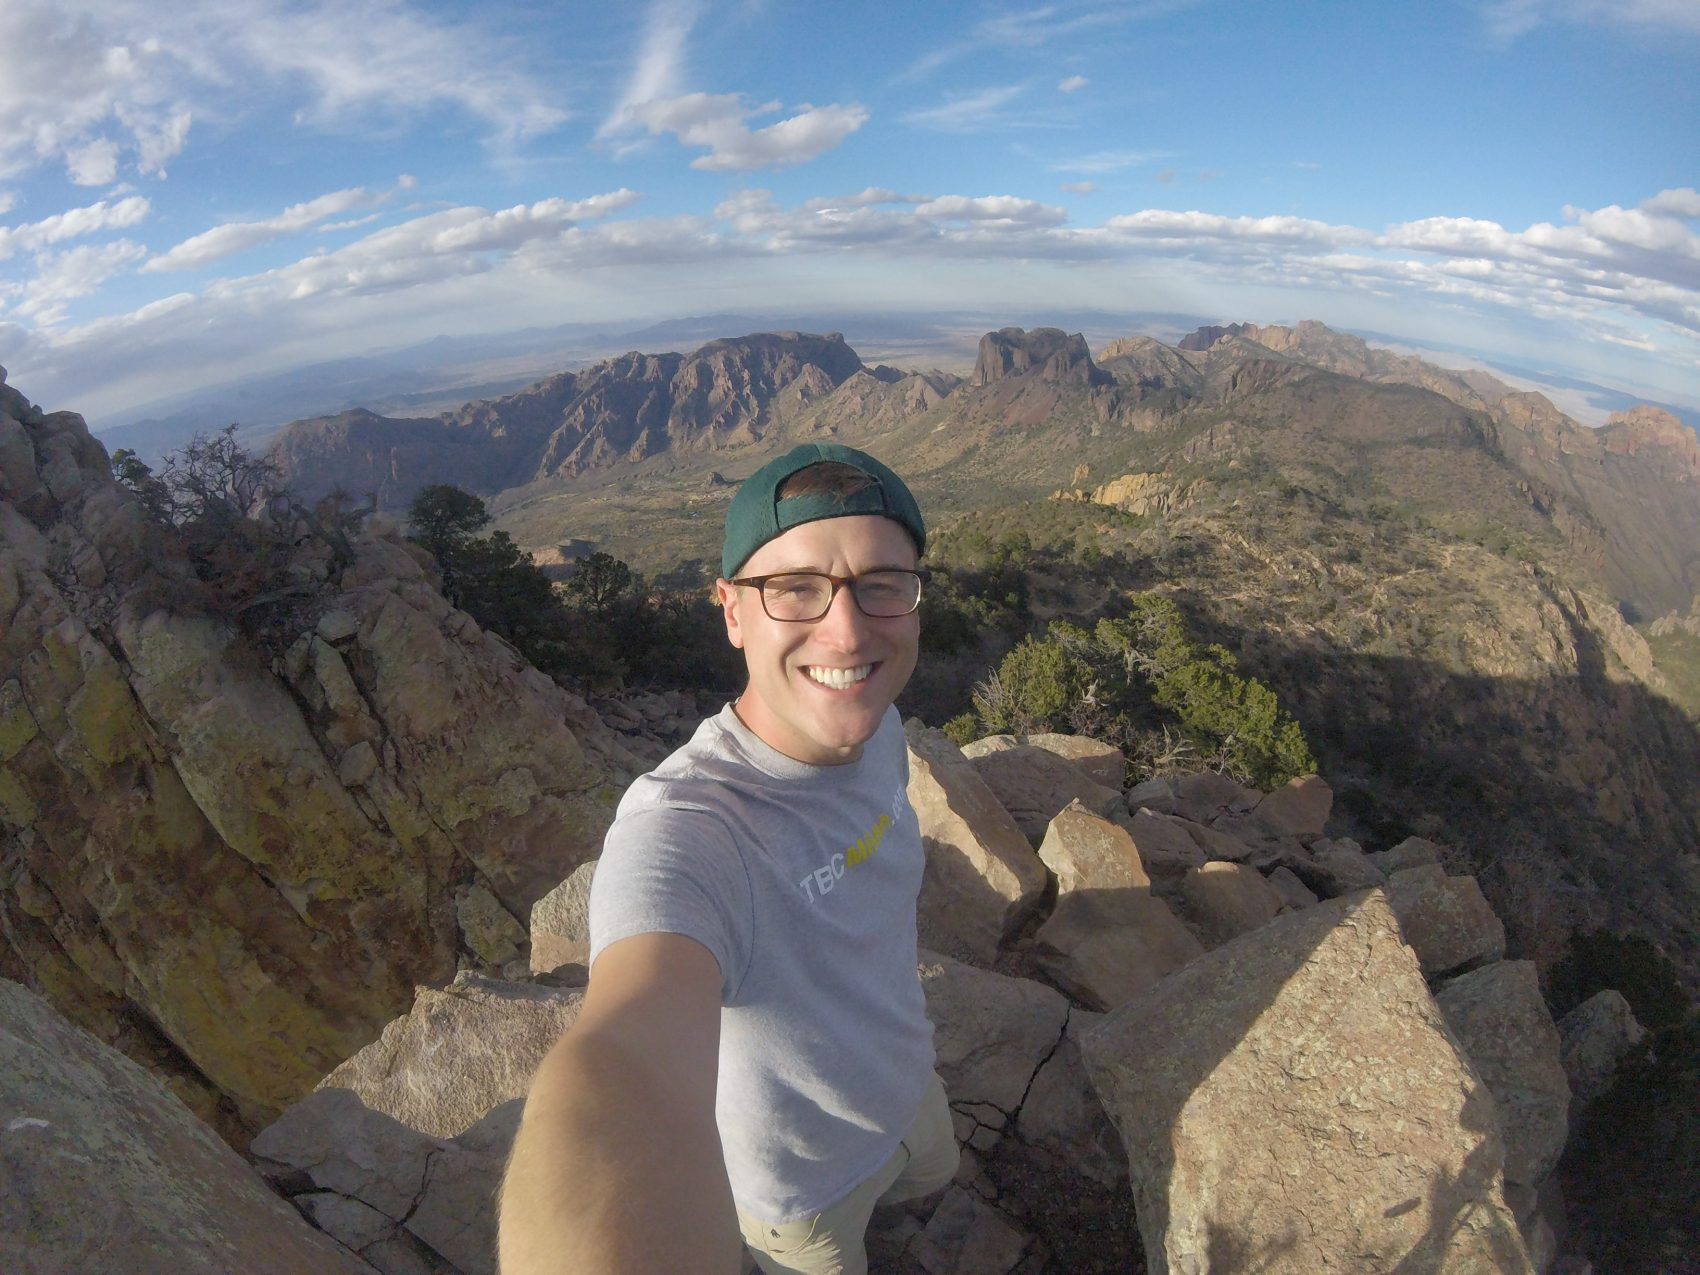 Mikah Meyer on top of Emory Peak in Big Bend National Park in Texas. (Courtesy of Mikah Meyer)